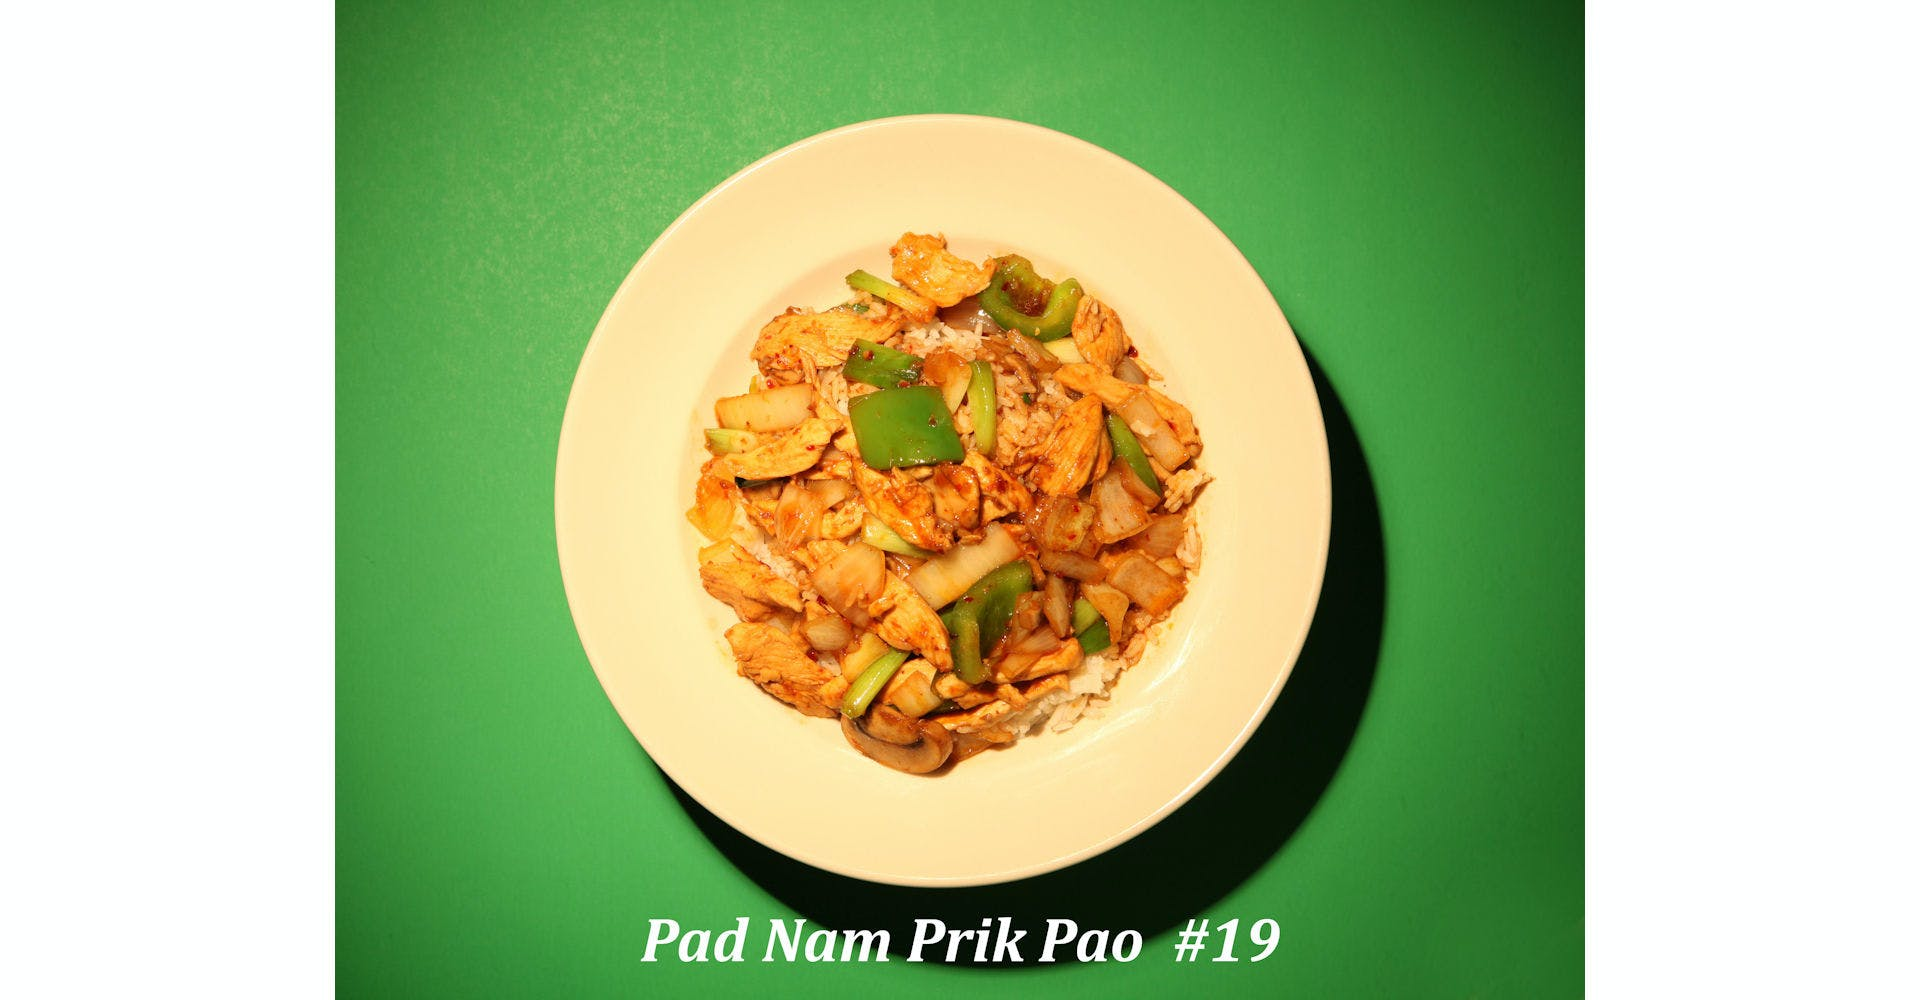 19. Pad Namprik Pao from Narin's Thai Kitchen in Green Bay, WI